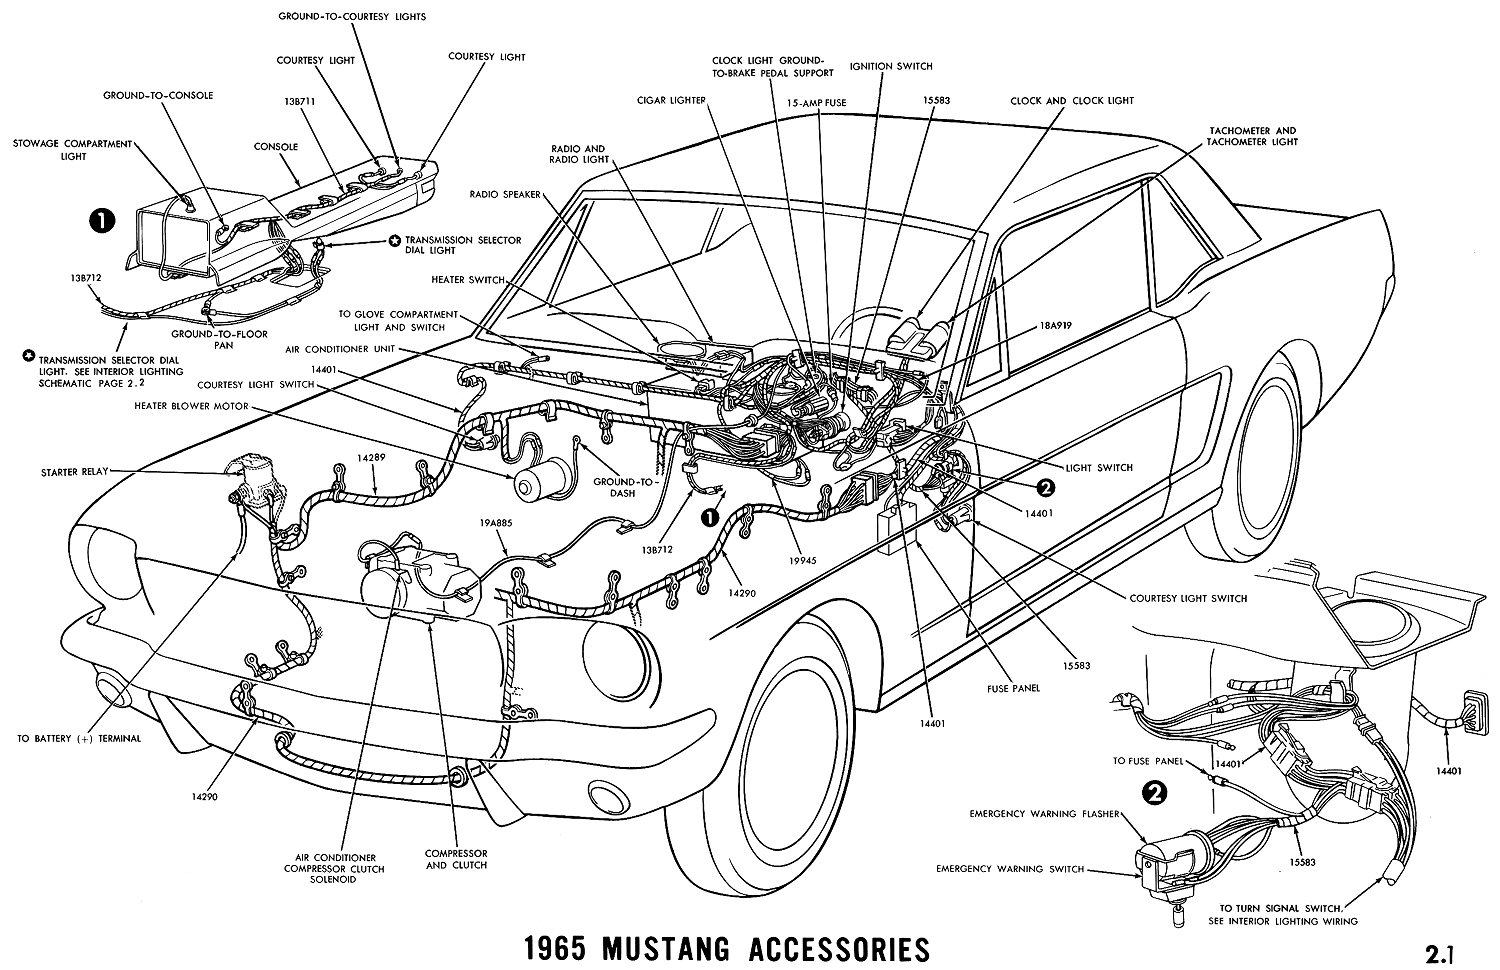 1965h 1965 mustang wiring diagrams average joe restoration 65 ford mustang wiring diagram at virtualis.co